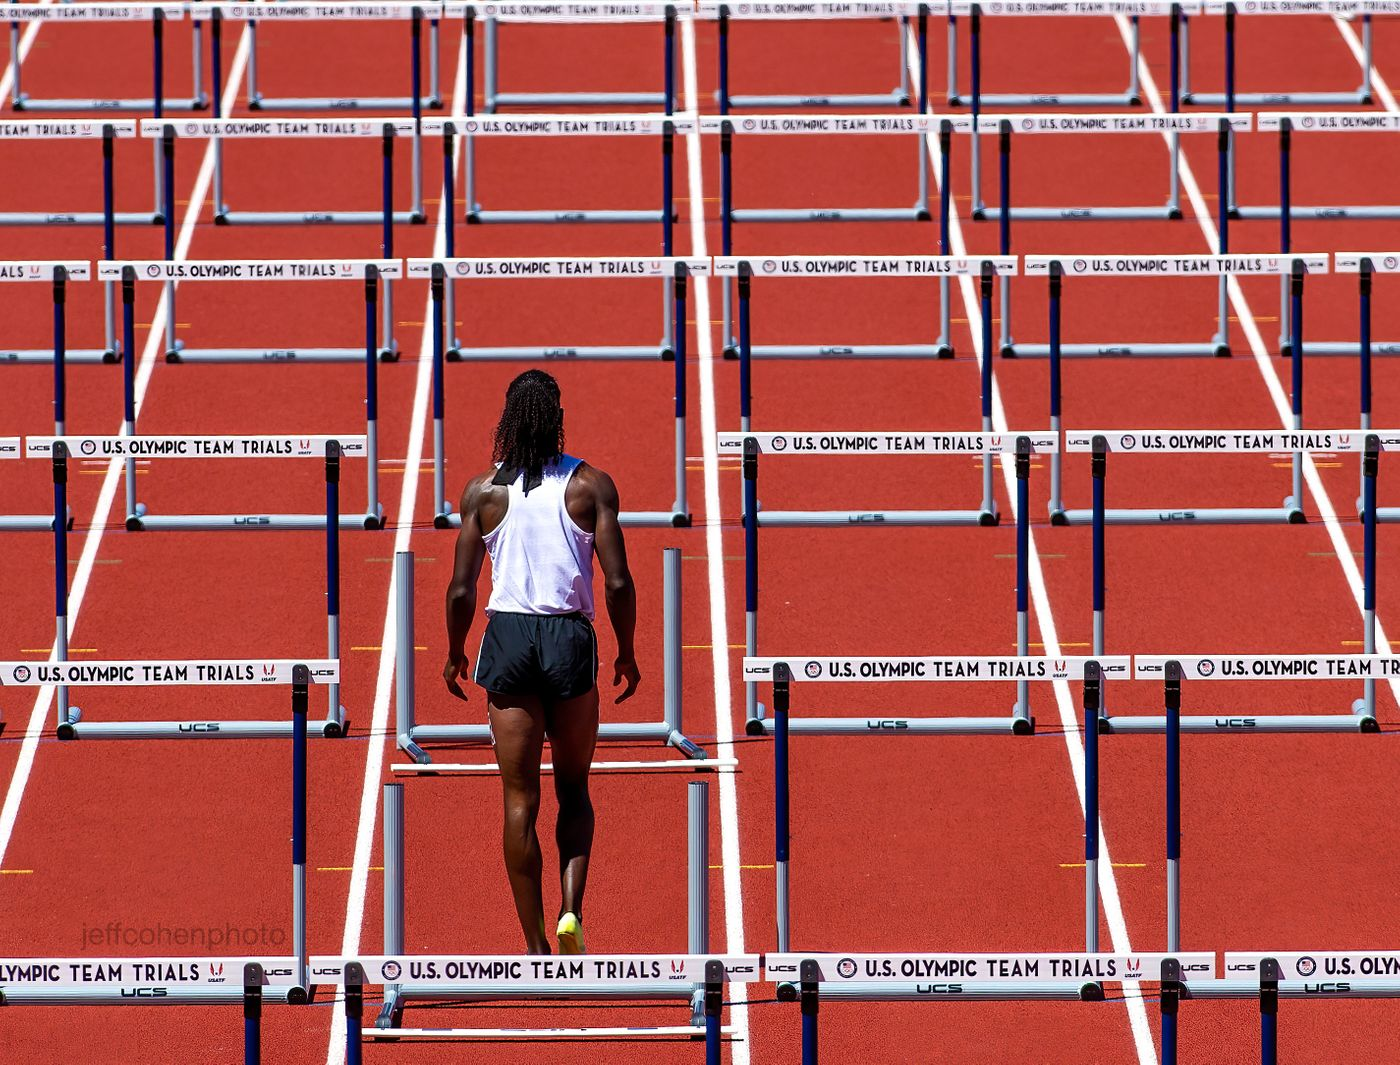 eaton-110h-2021-US-Oly-Trials--day-6-488-jeff-cohen-photo--web.jpg